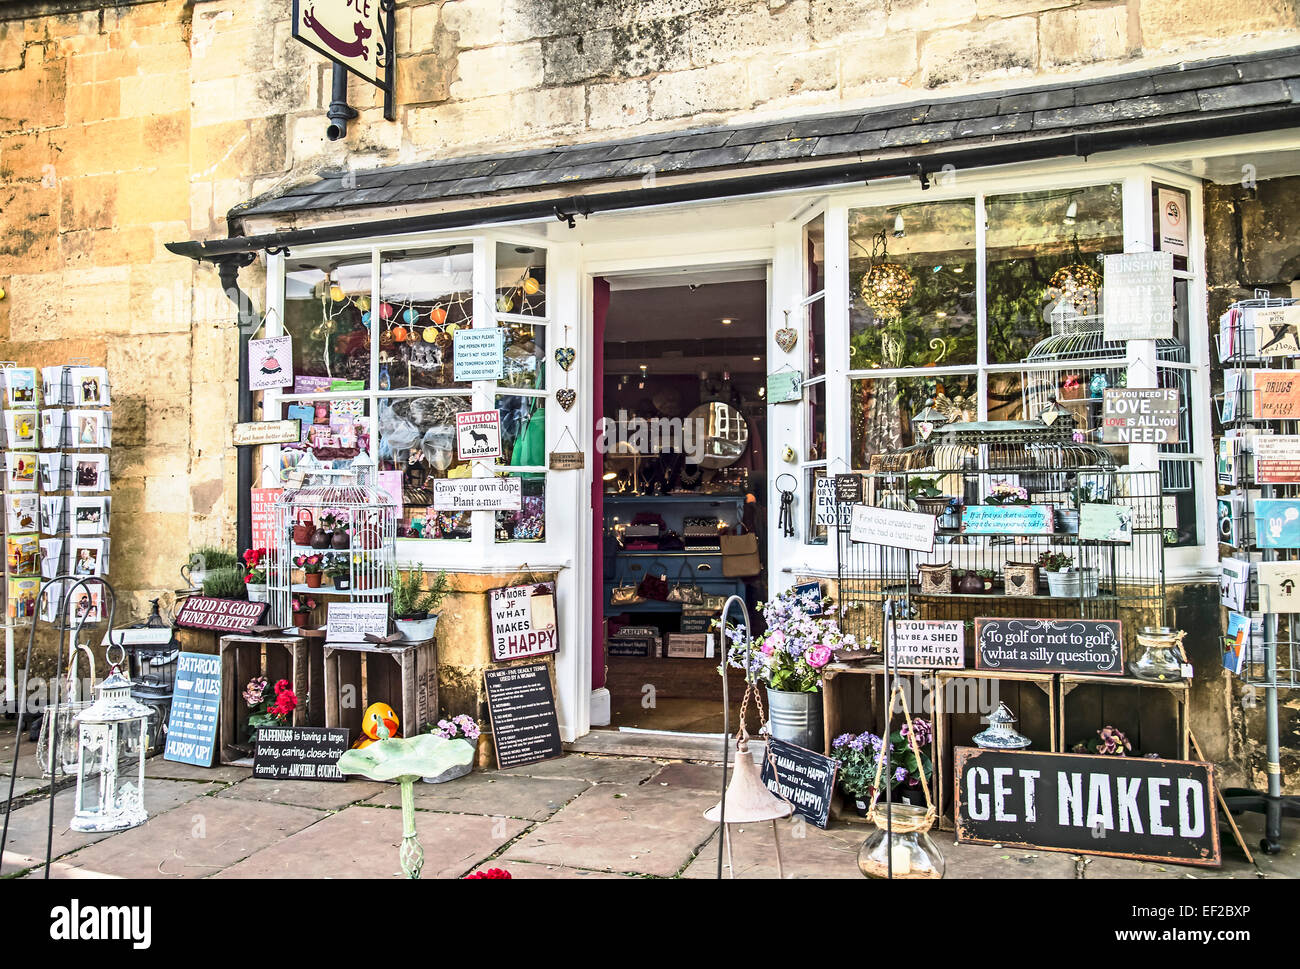 Souvenir shop in Chipping Camden - Stock Image